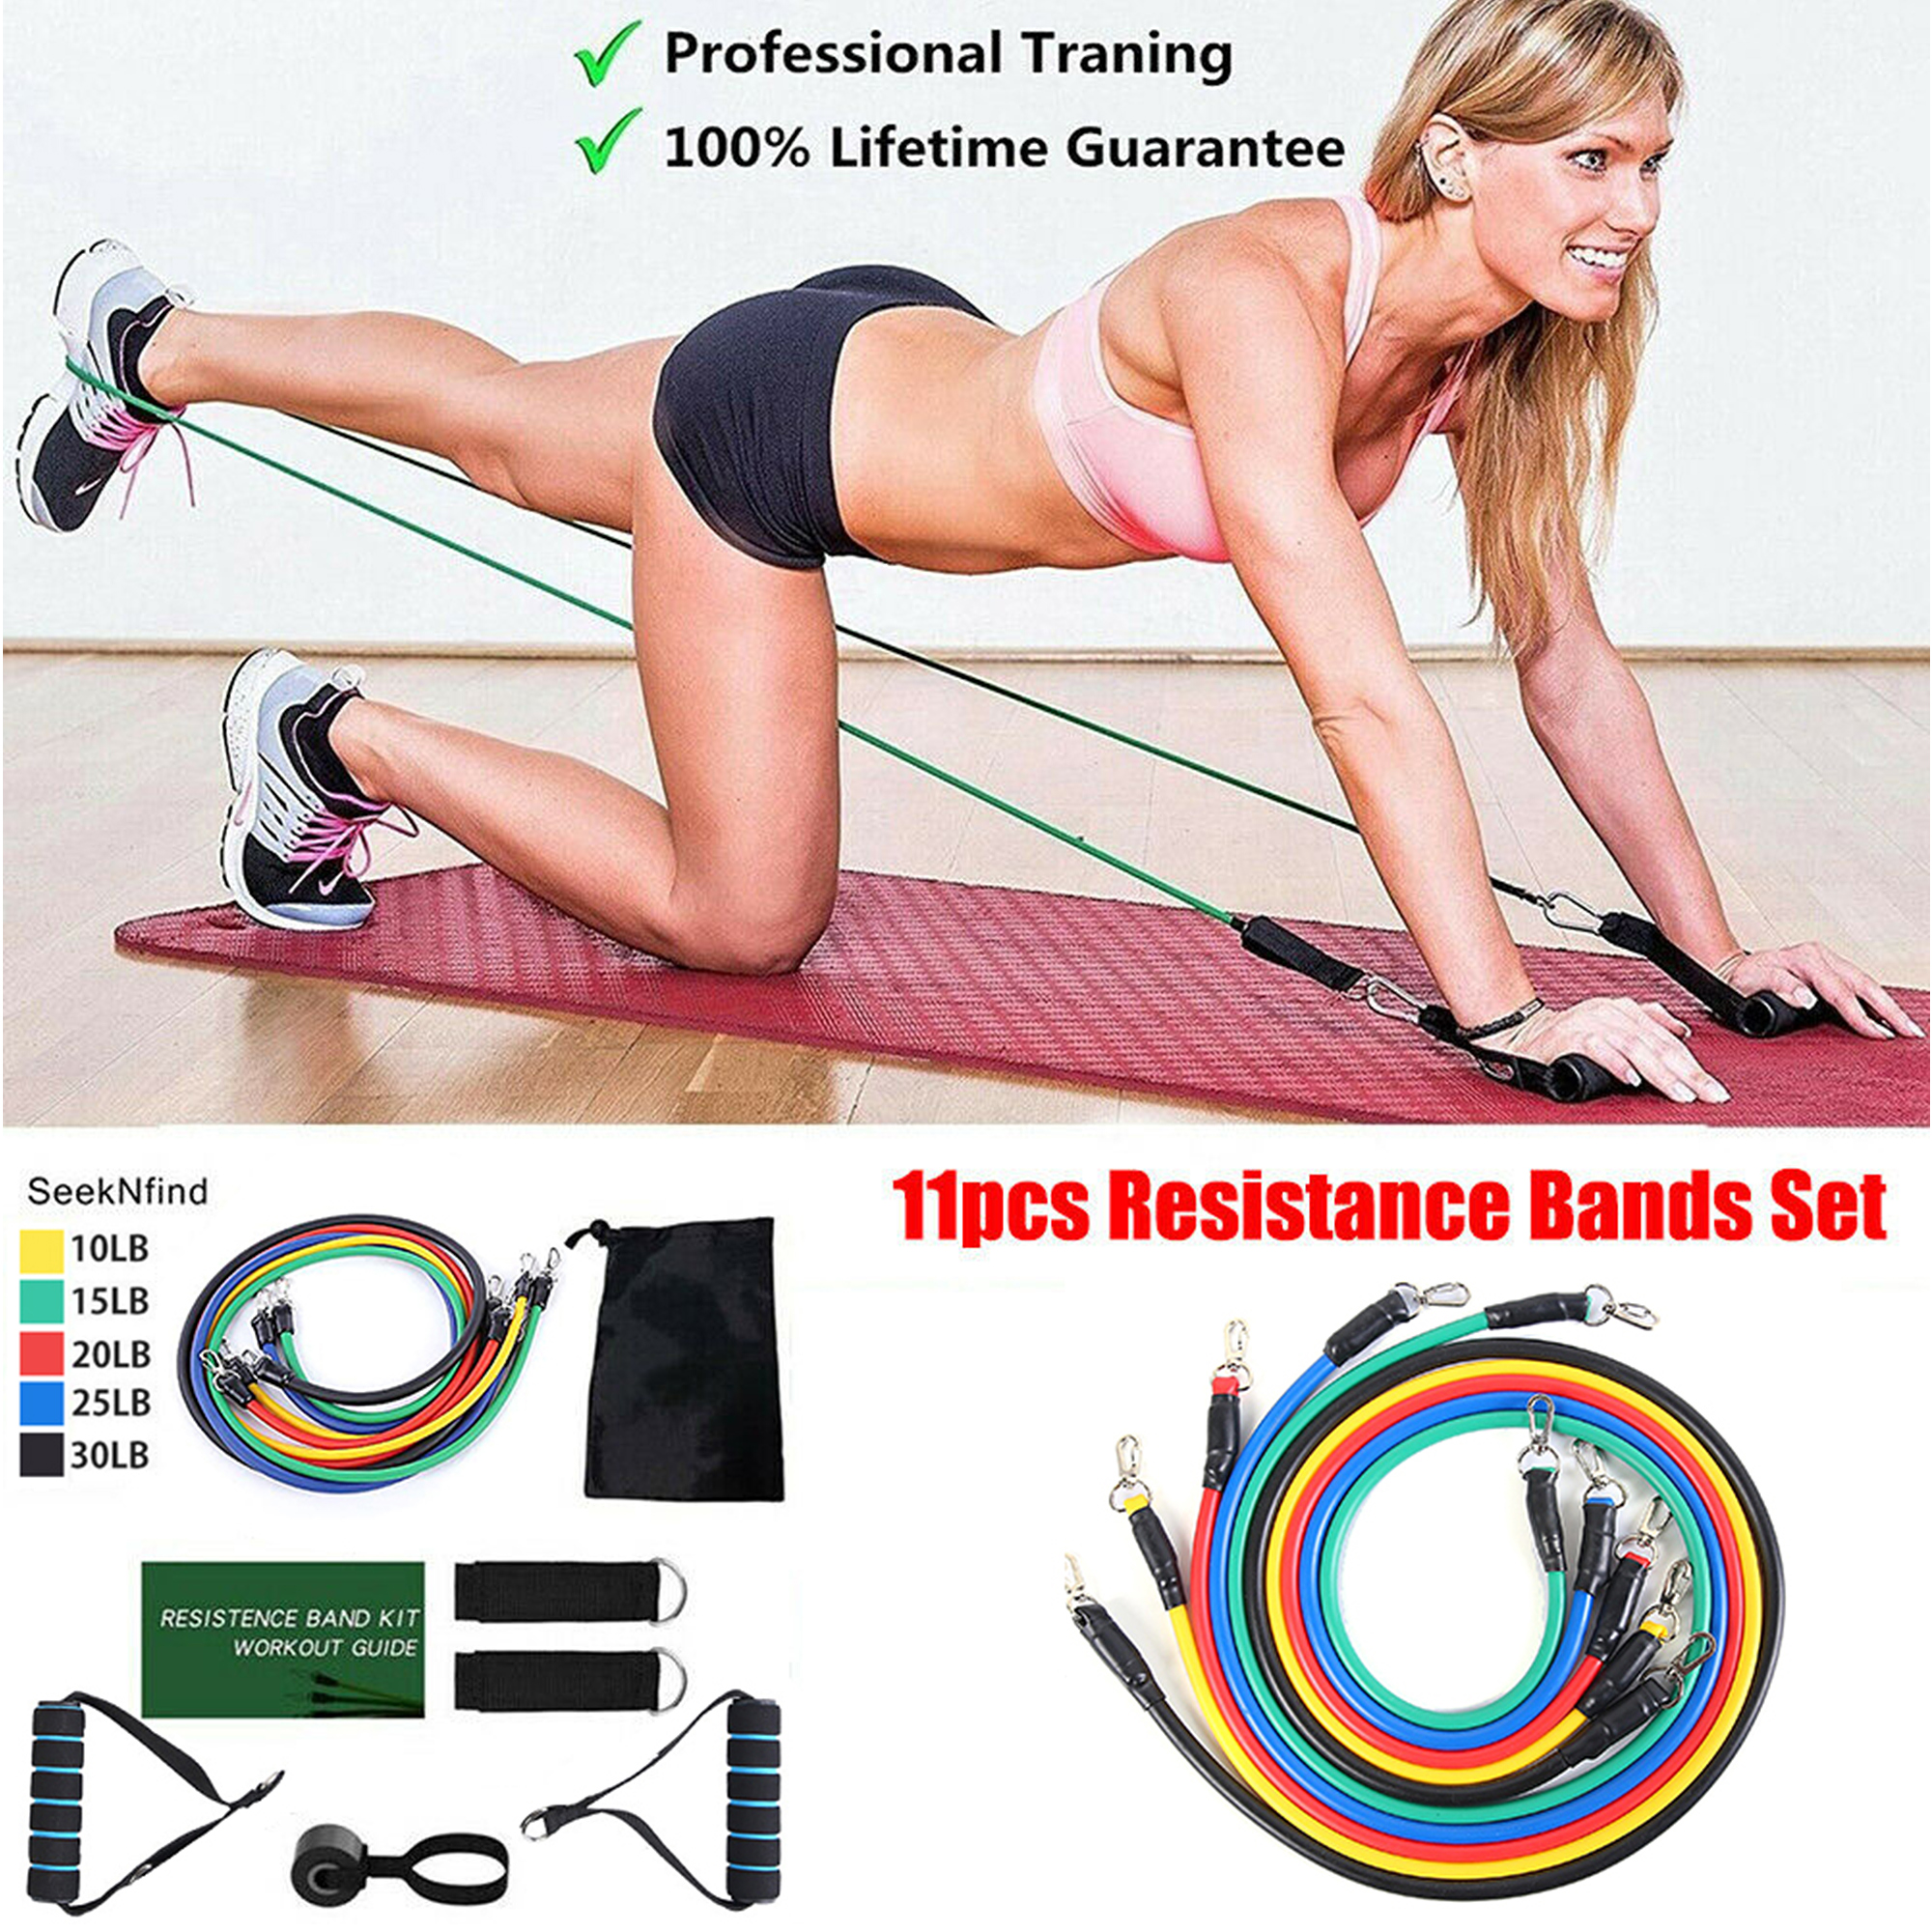 Details about  /Resistance Bands Set Exercise Fitness Home Workout Gym Yoga Abs Body Tube 11Pcs